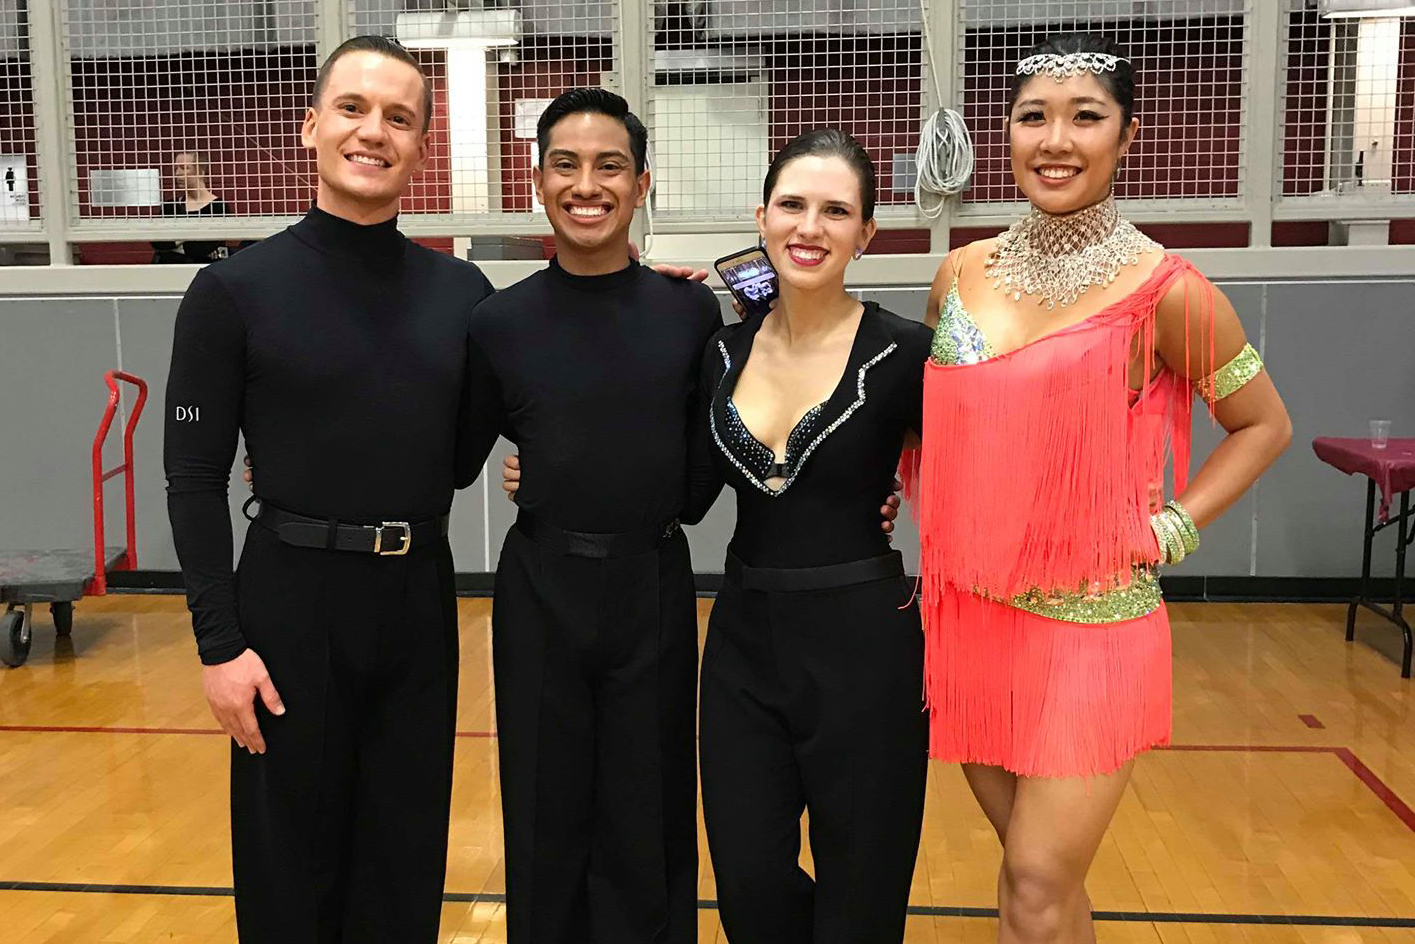 From left to right: The other same-sex couple in pre-champ Latin. Two men, both wearing black dance turtlenecks, black pants, and black shoes. Then me, in my black Latin shirt and black Latin shoes, but this time with a pair of Men's Dance Pants. On the right is my new partner Michelle, who has black and purple hair in a bun with a silver headpiece, a silver collar, and a silver, green, and salmon pink fringed dress, along with green bracelets and tan Latin shoes. We are standing in MIT's Rockwell Cage.